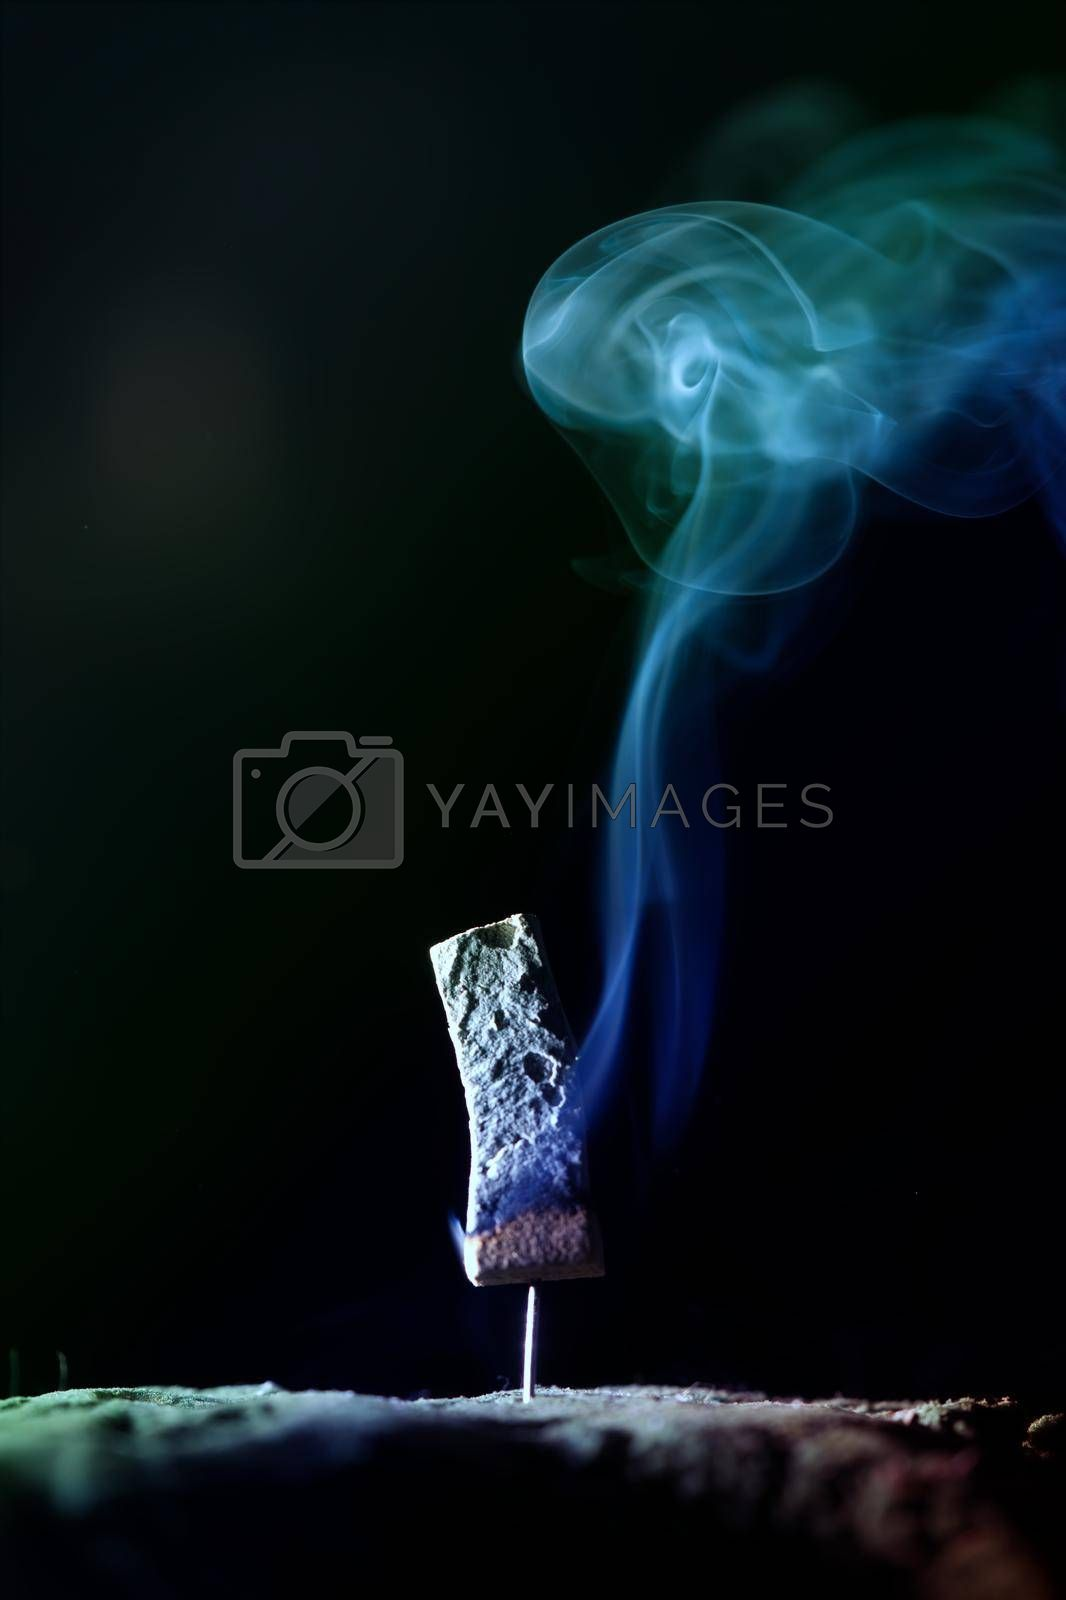 Incense burning incense, white smoke, black background, used as background image Paying homage to the sacred objects of the people of Buddhism according to their beliefs and beliefs.